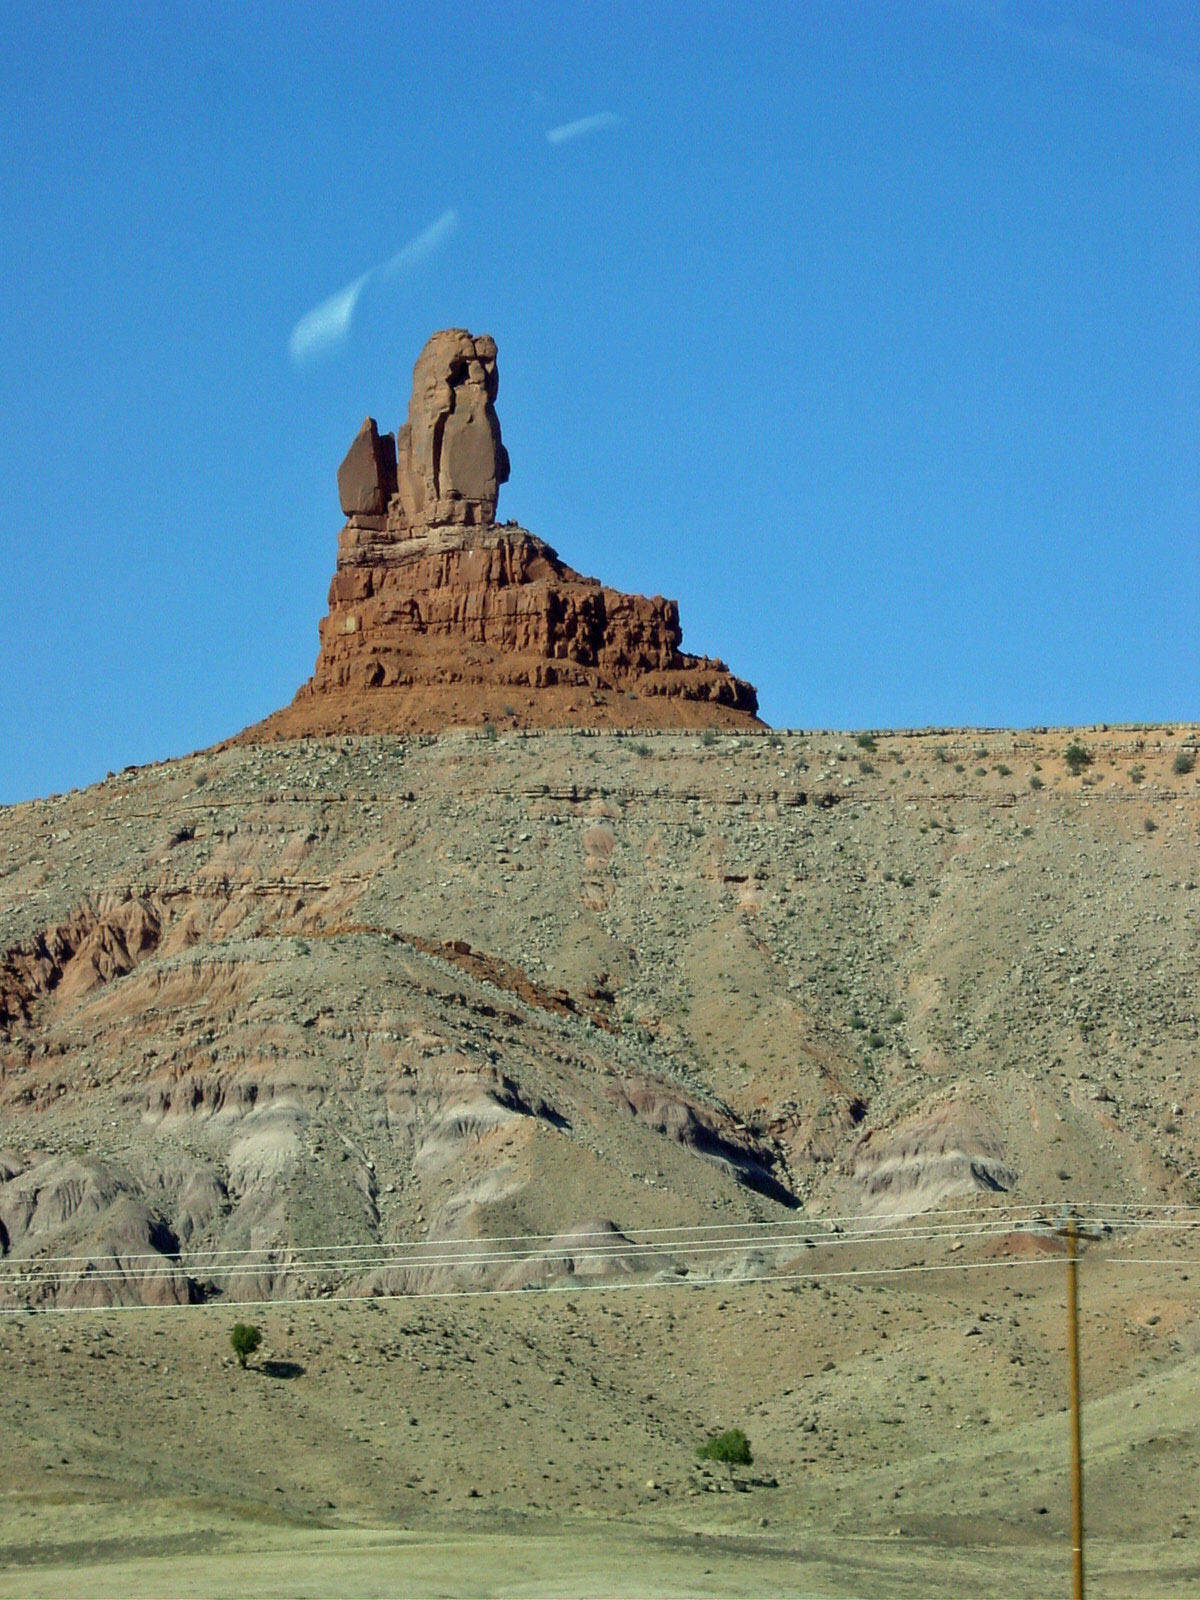 Unterwegs vom Monument Valley zum Grand Canyon